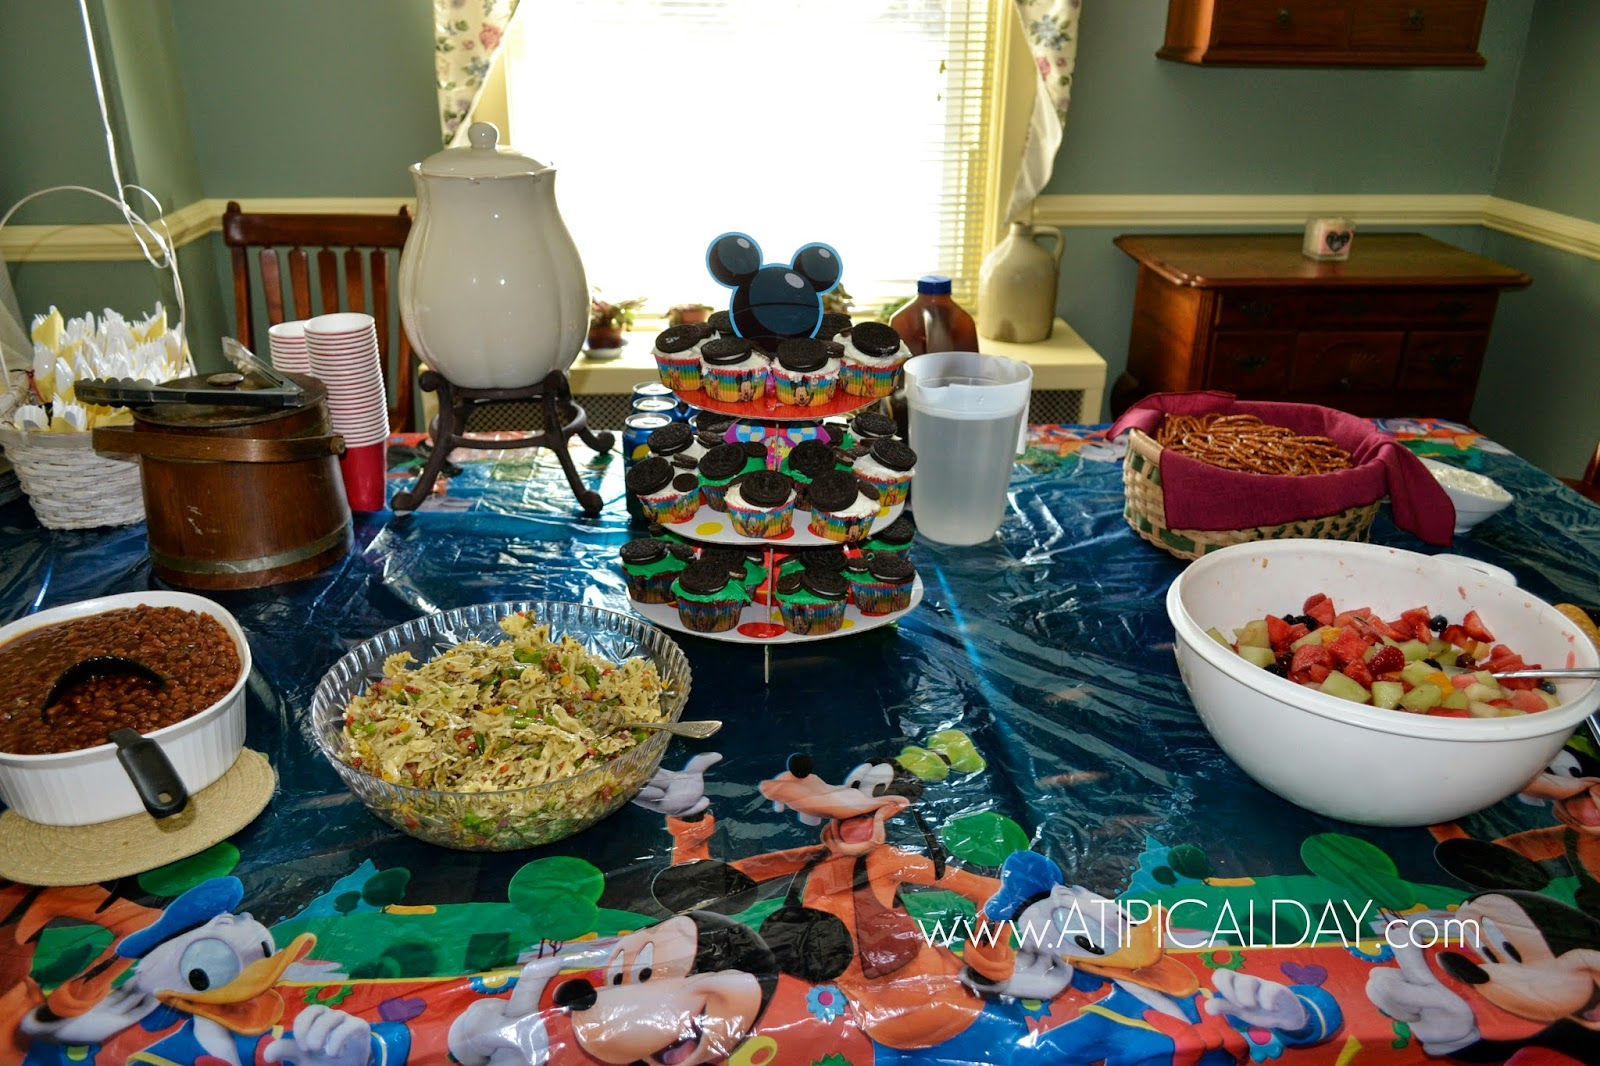 Mickey mouse party on a budget a tipical day on the menu at the mickey mouse party aloadofball Choice Image